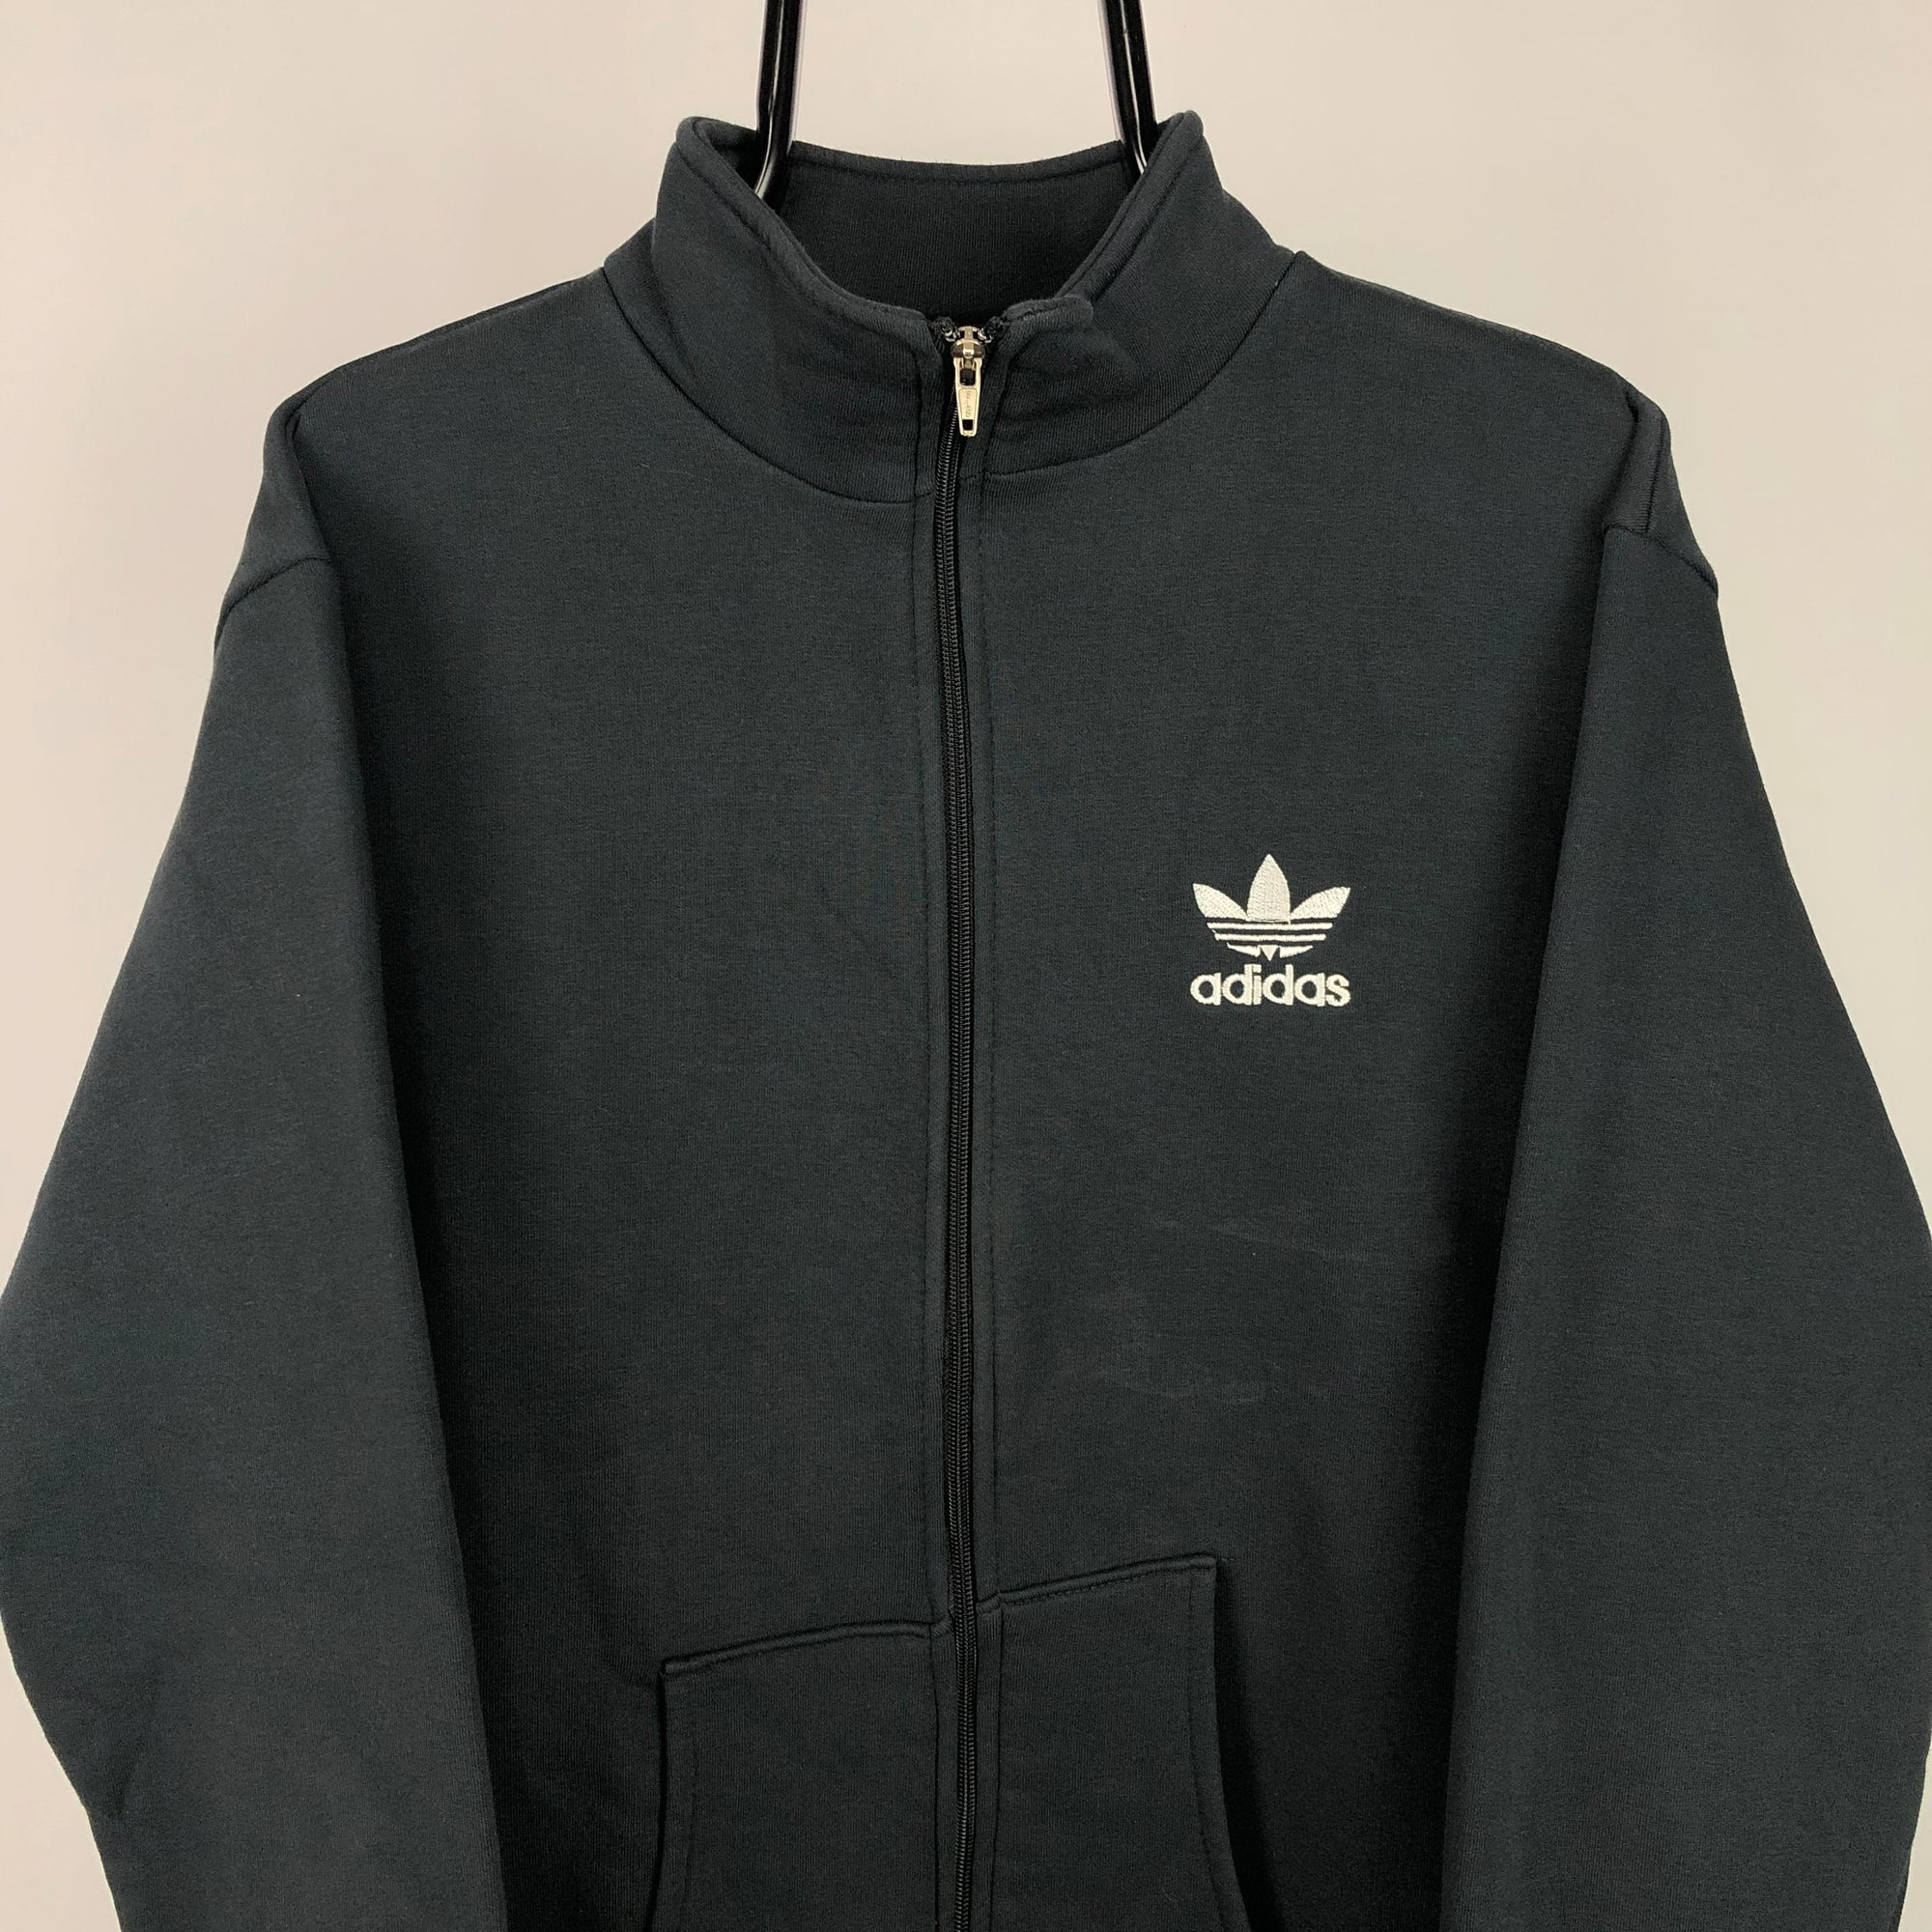 Adidas Embroidered Small Logo Zip Up Sweatshirt in Black - Men's Large/Women's XL